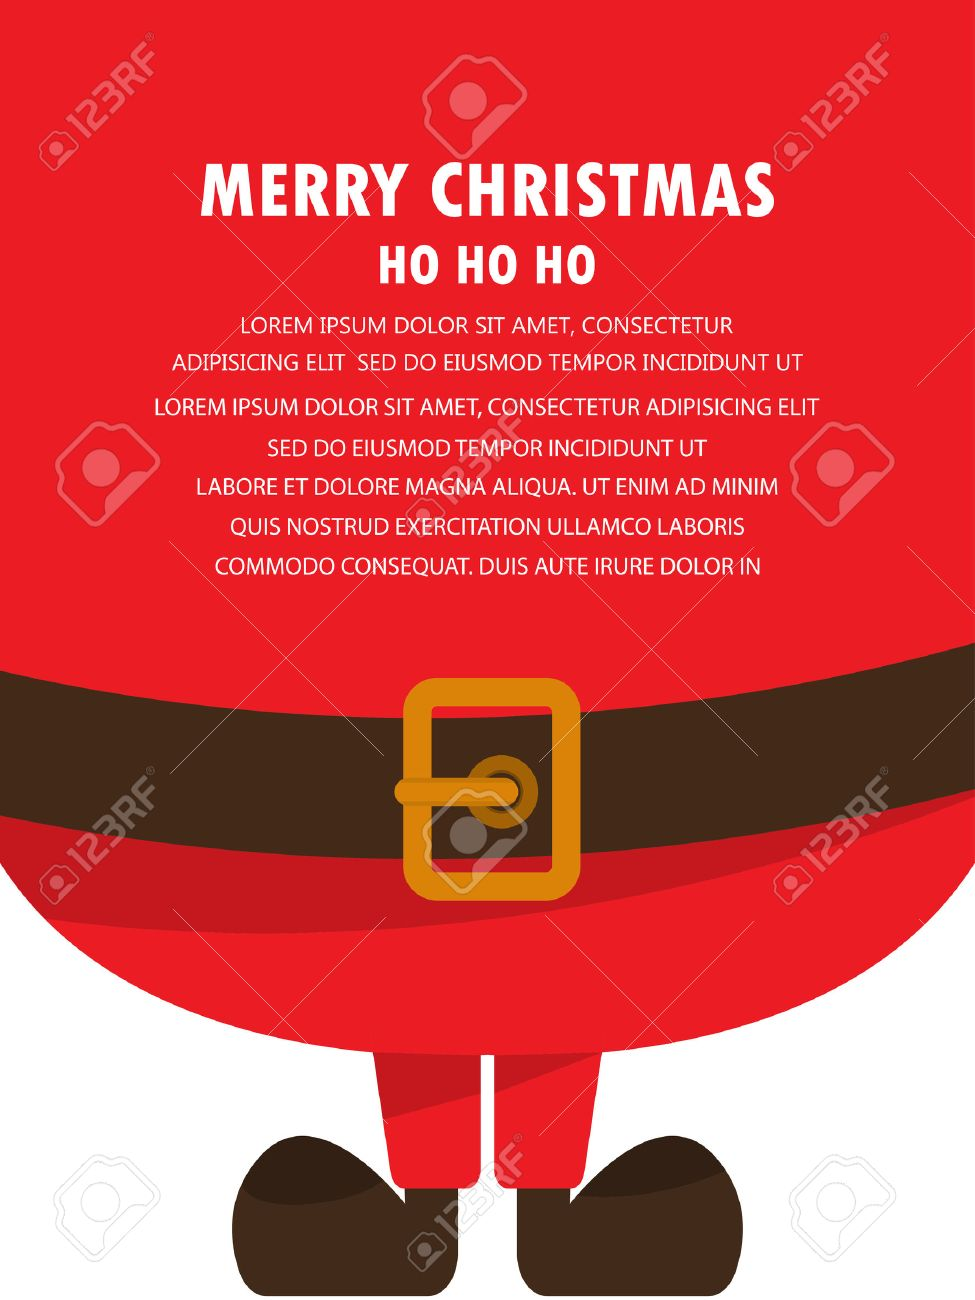 xmas voucher stock photos pictures royalty xmas xmas voucher christmas invitation and greeting template santa clause can be use for